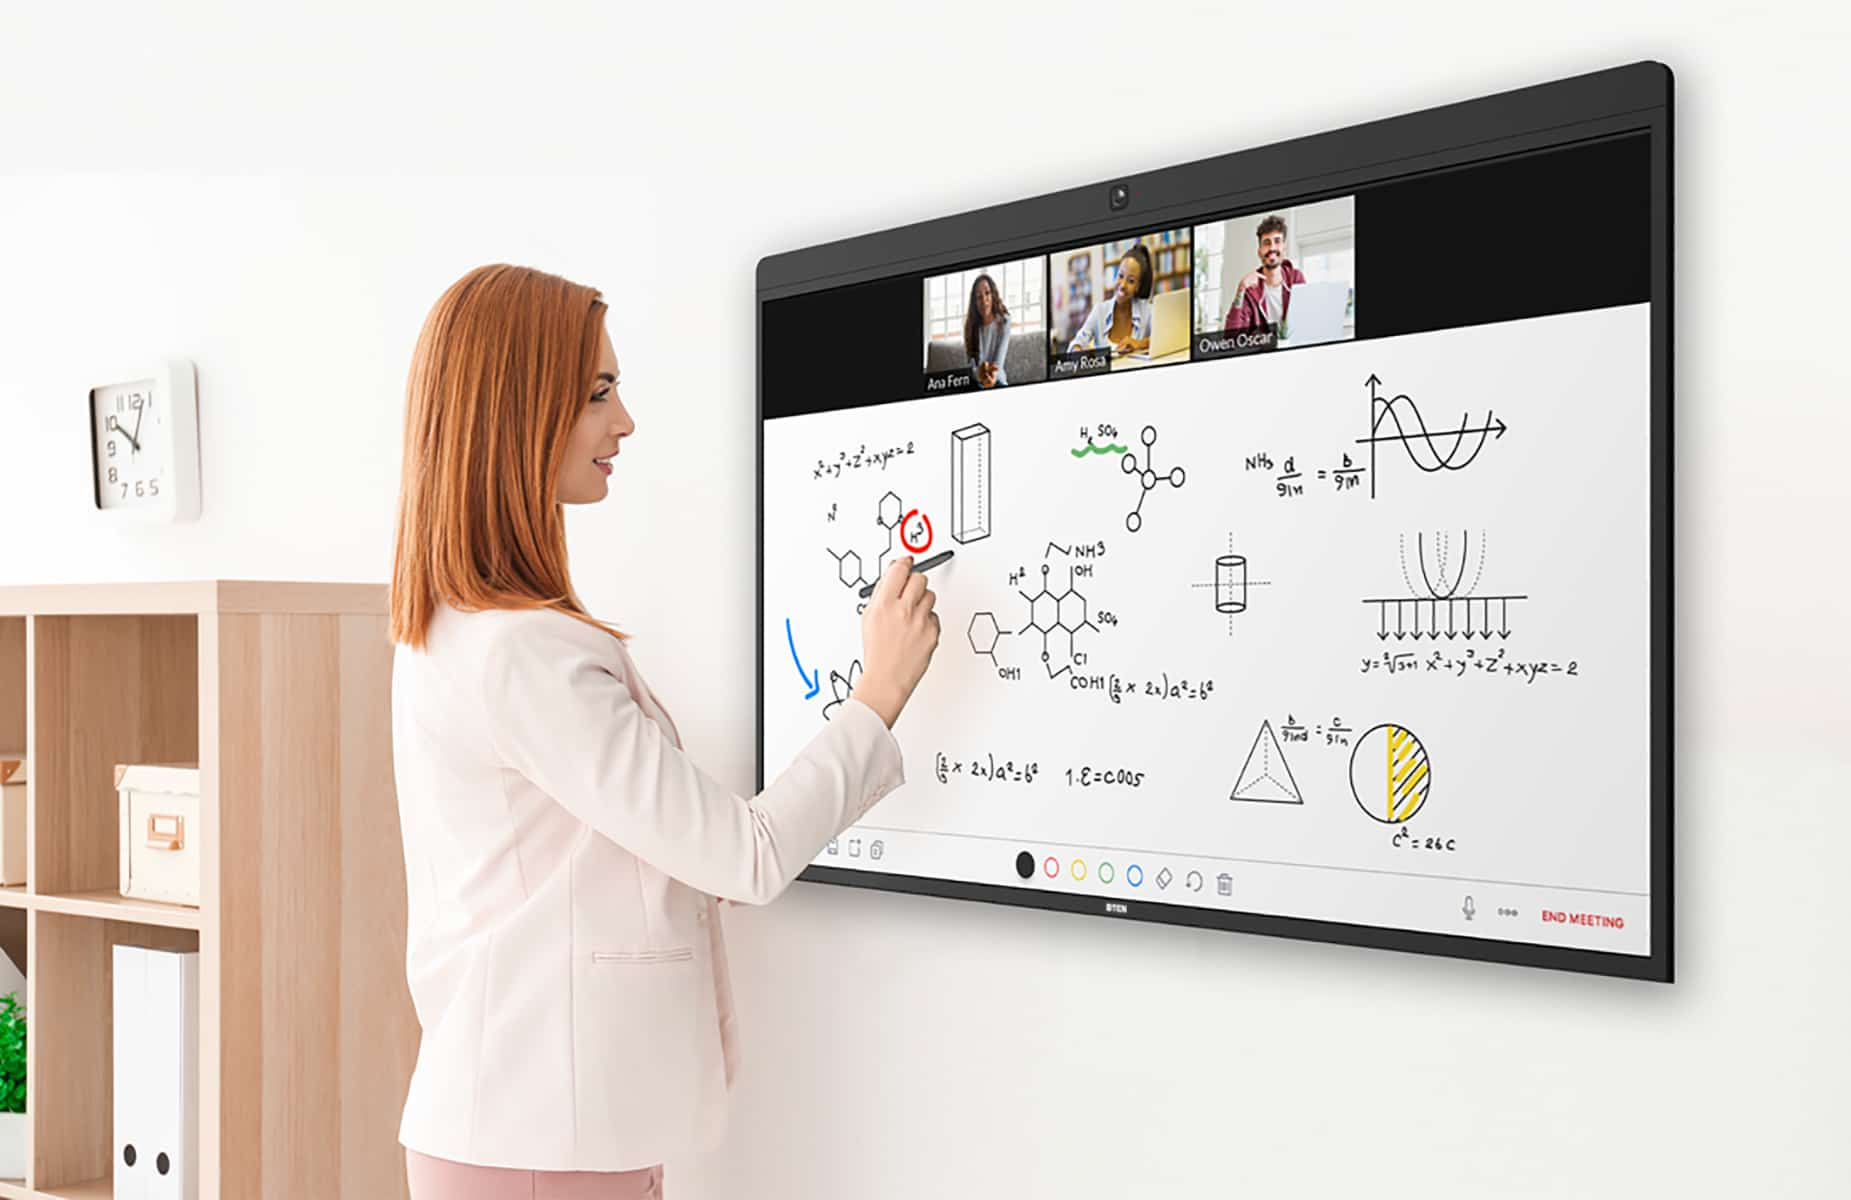 Remote Learning with Virtual Classrooms